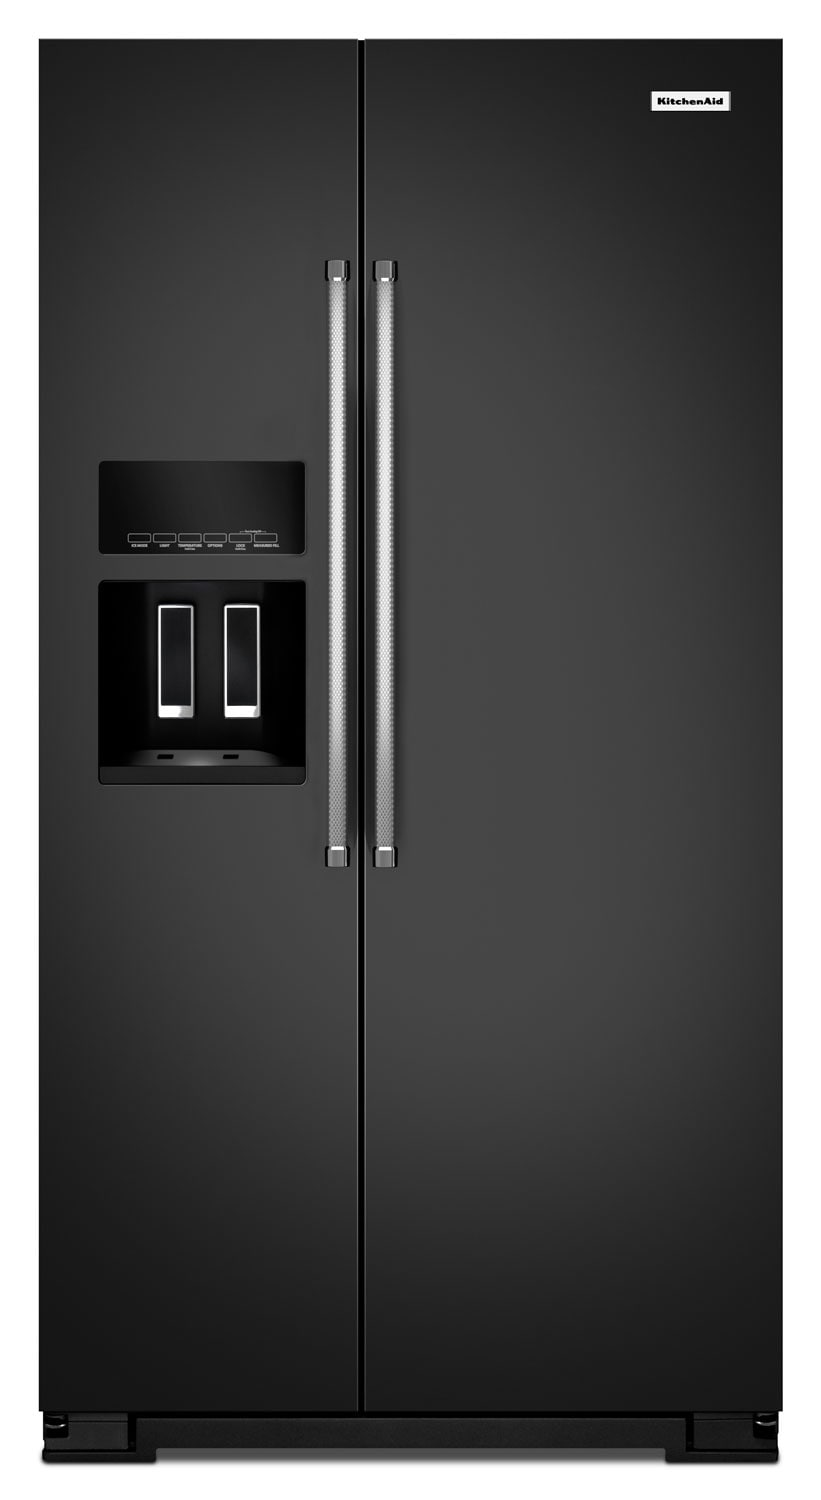 KitchenAid Black Side-by-Side Refrigerator (24.8 Cu. Ft.) - KRSF505EBL